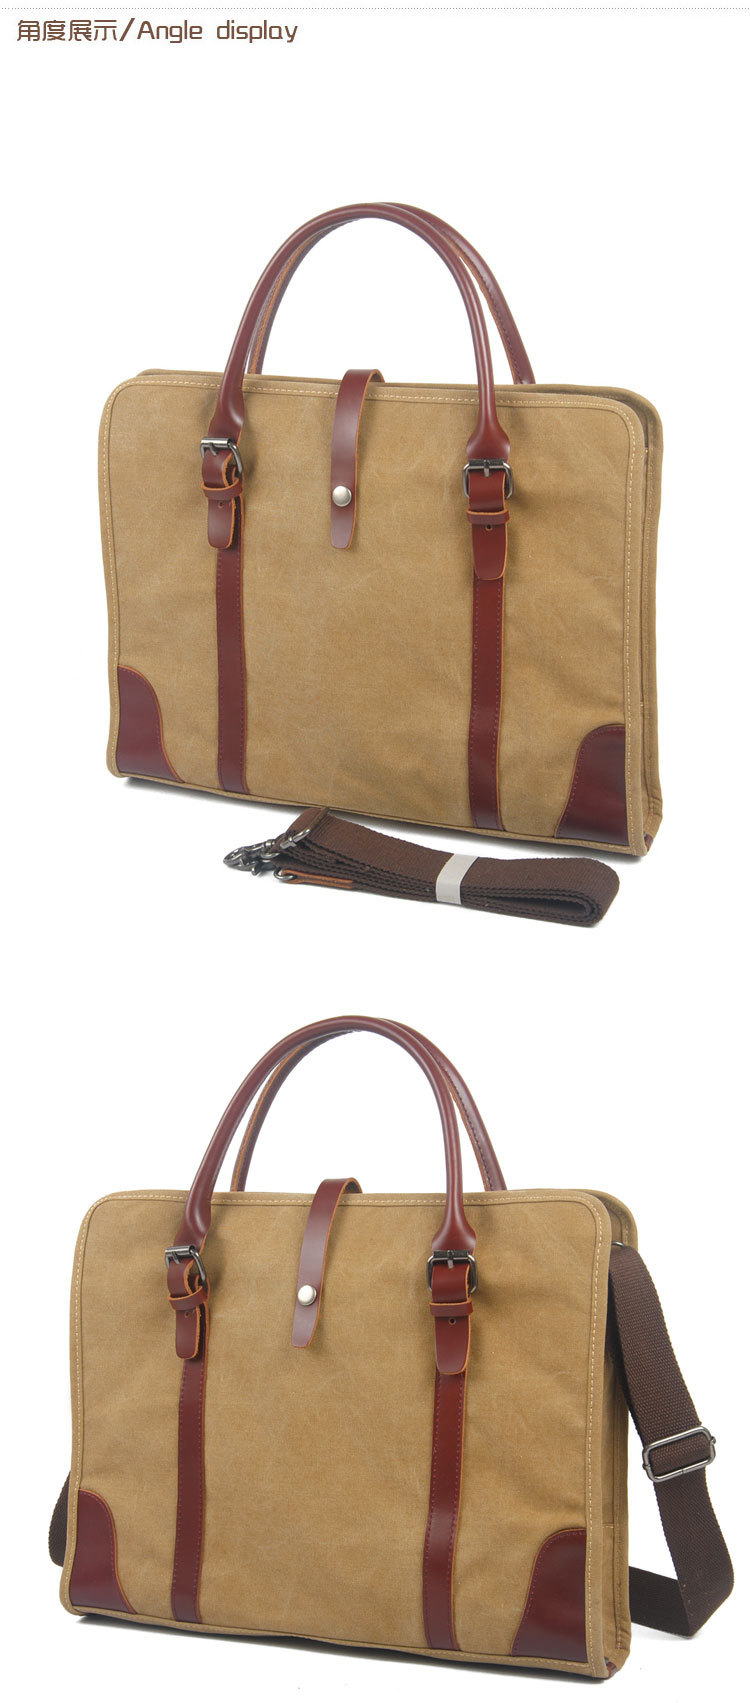 Men's Canvas leather travel handbag for business